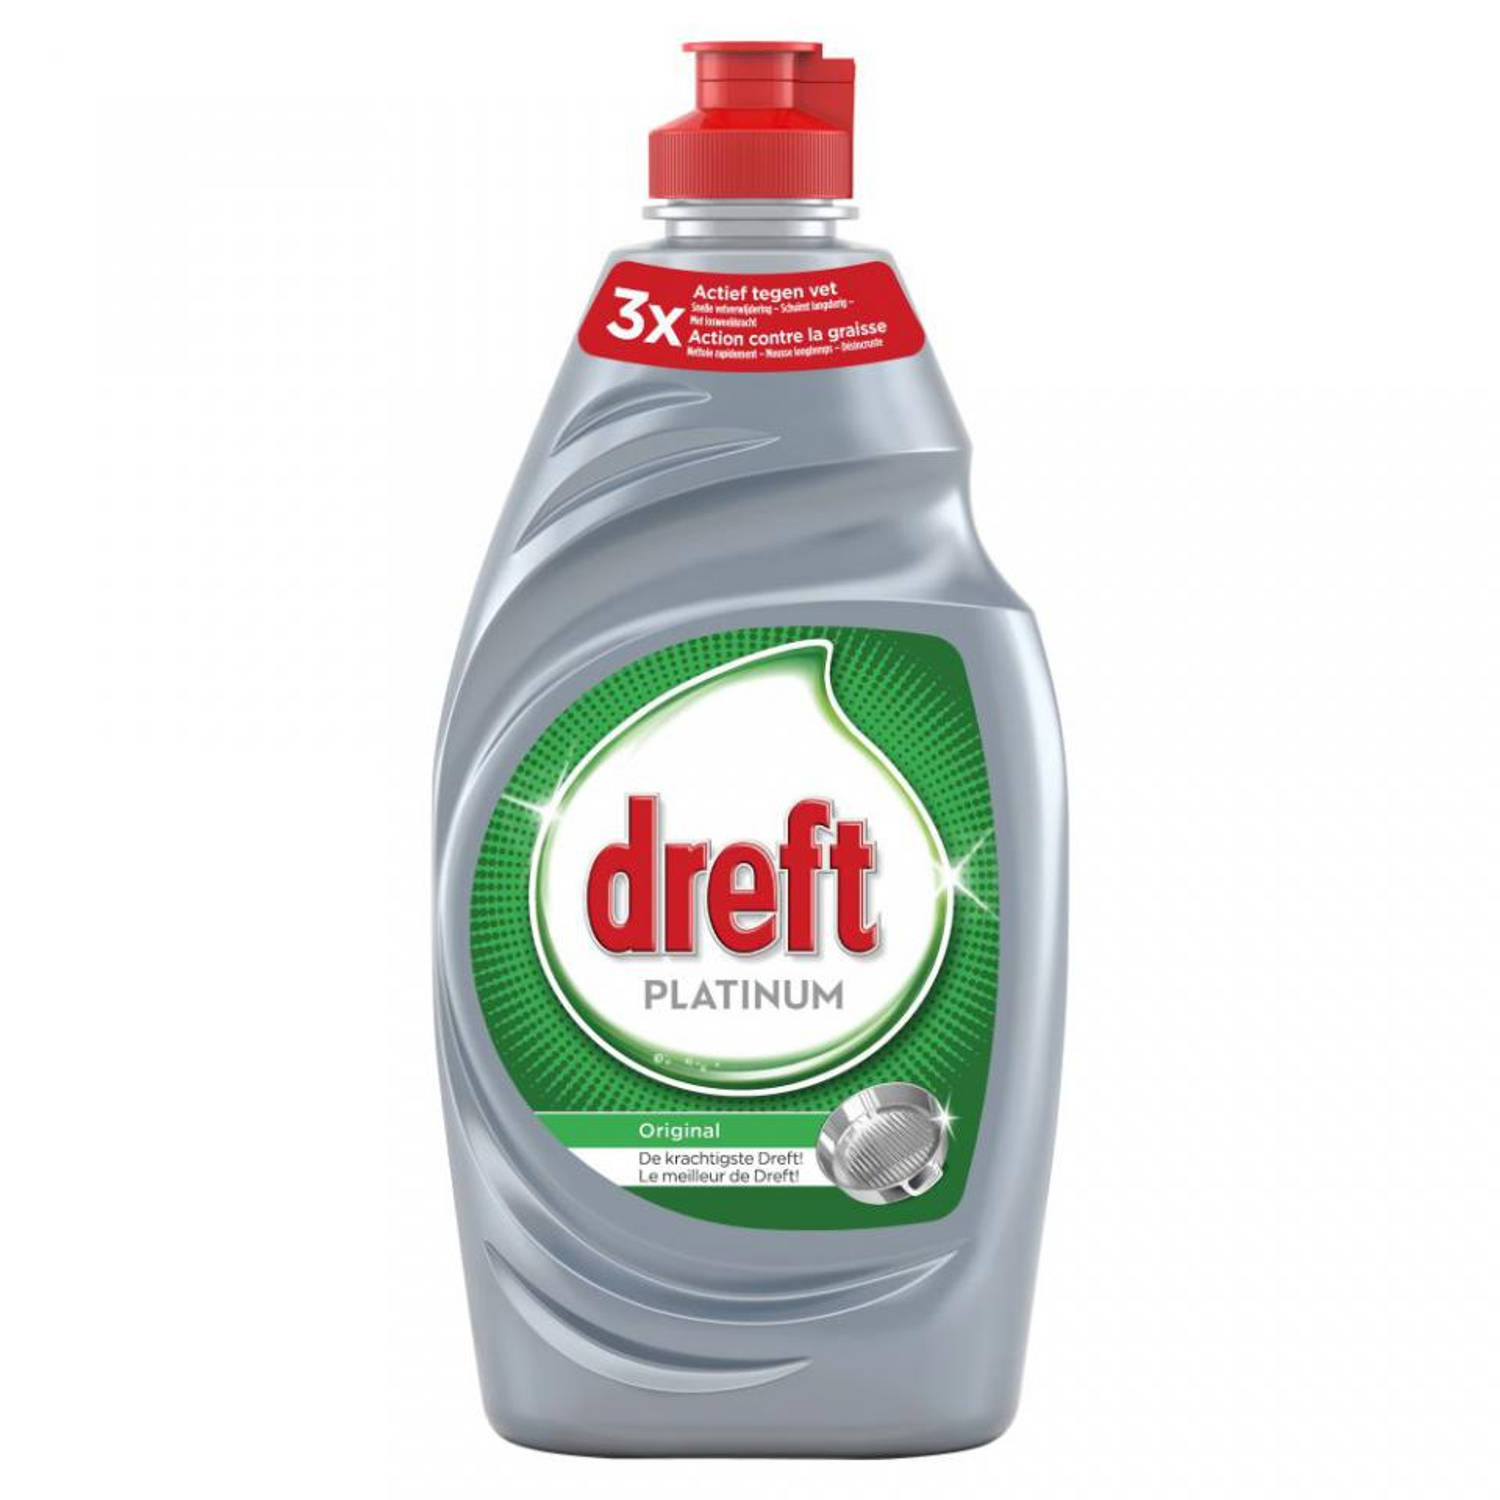 Dreft Platinum afwasmiddel Original - 400 ml